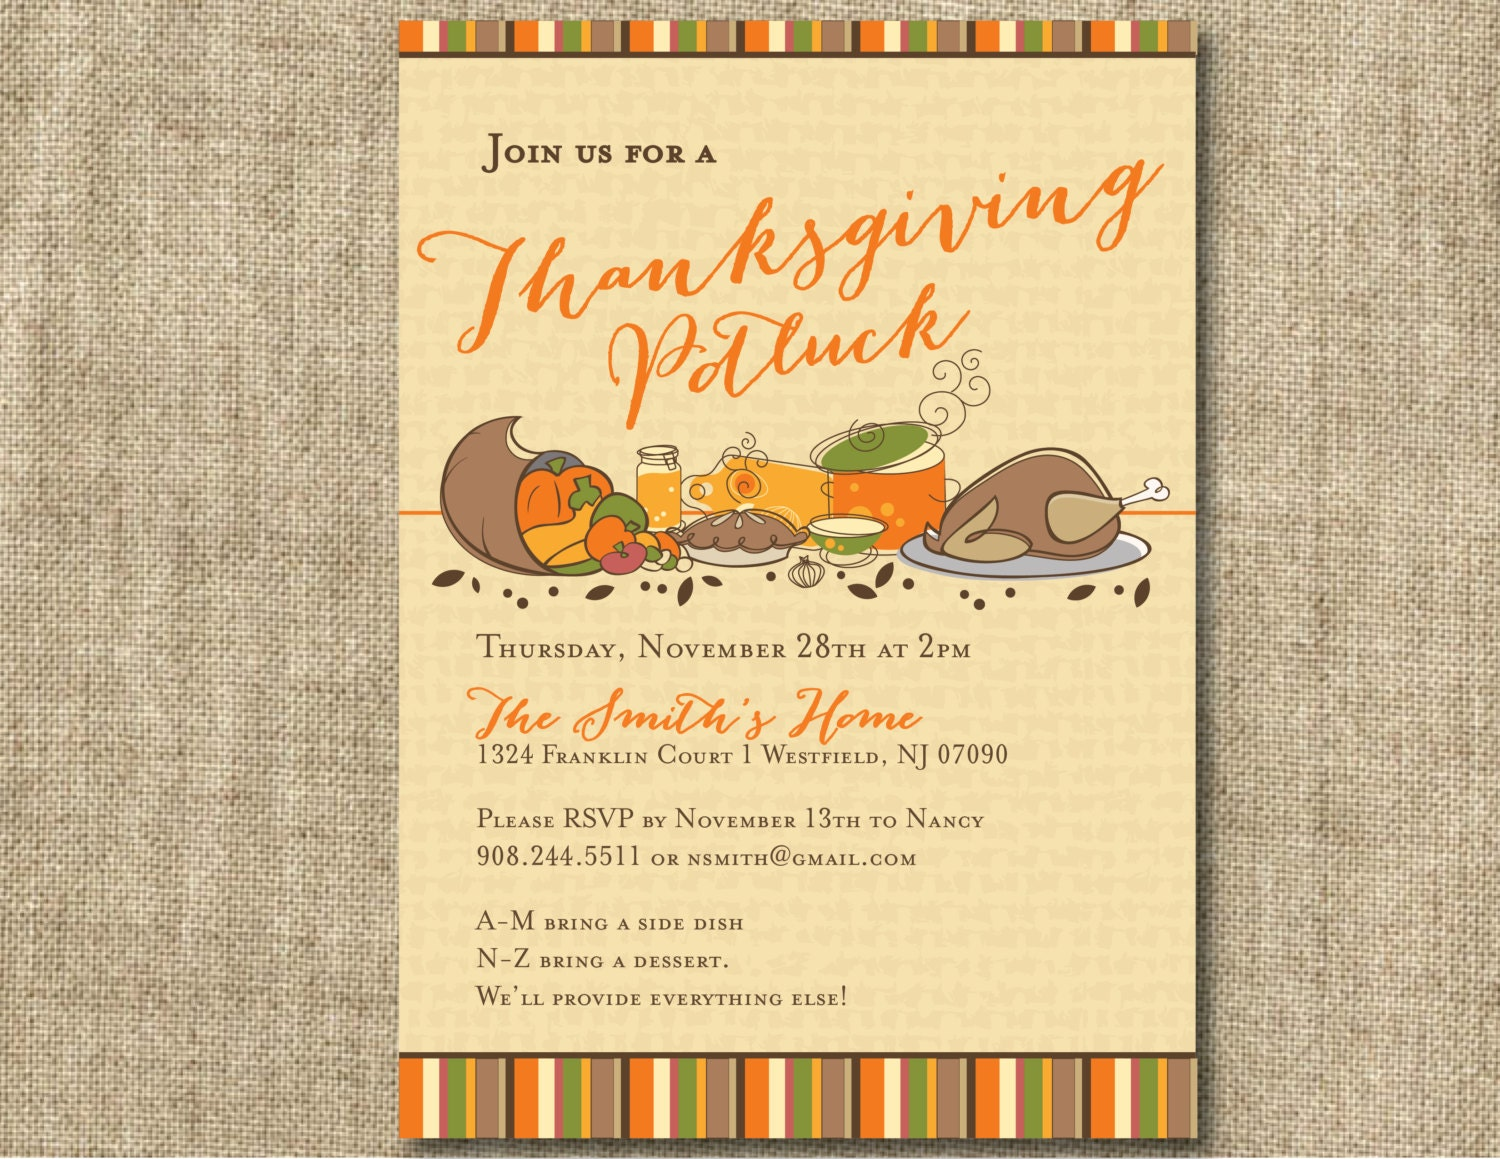 Thanksgiving Potluck Invitation – Thanksgiving Party Invitation Wording